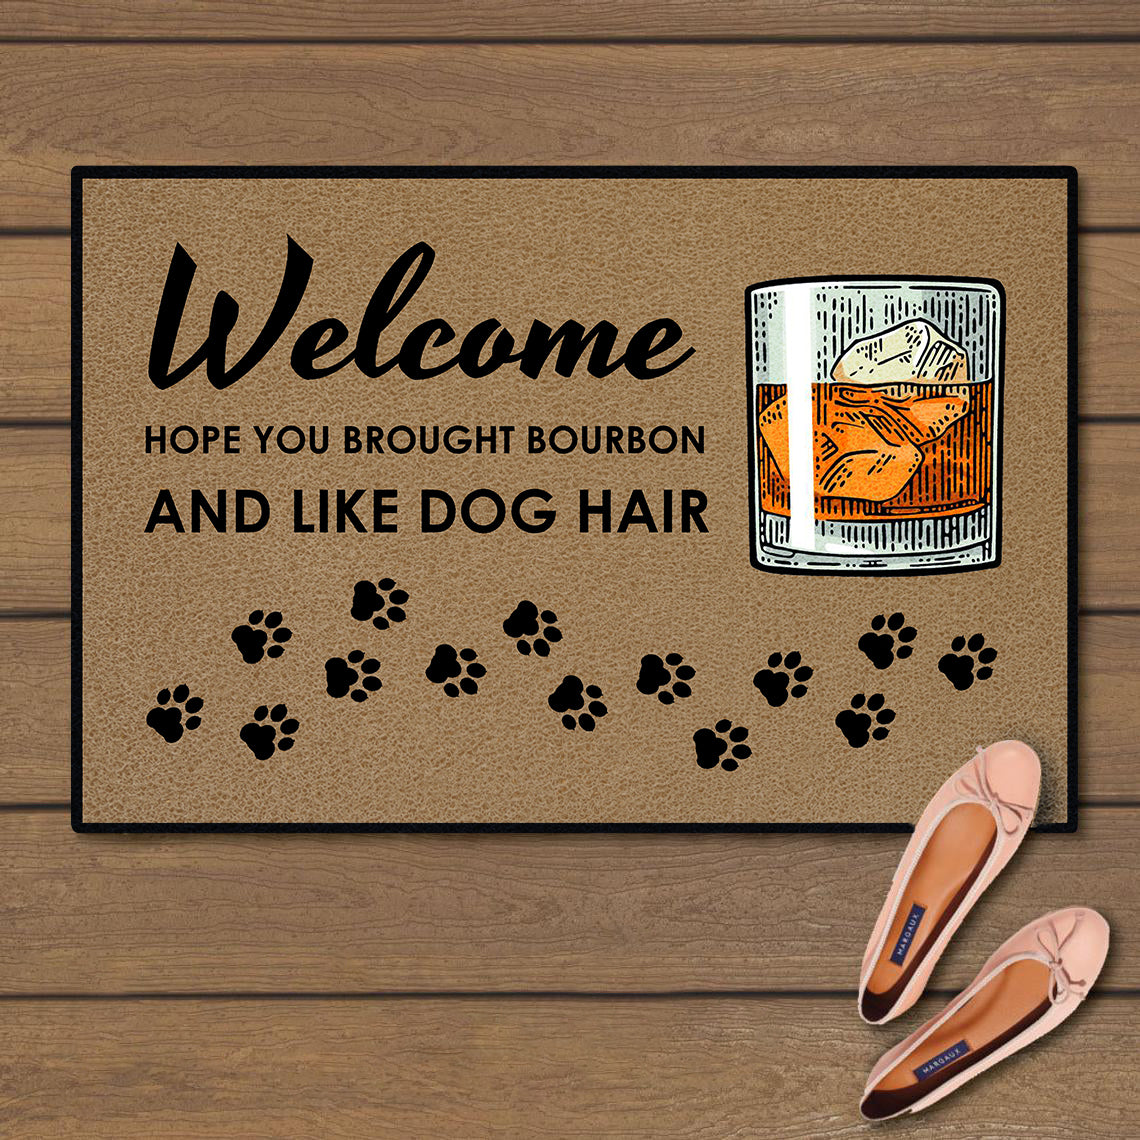 Welcome hope you brought bourbon and like dog hair doormat